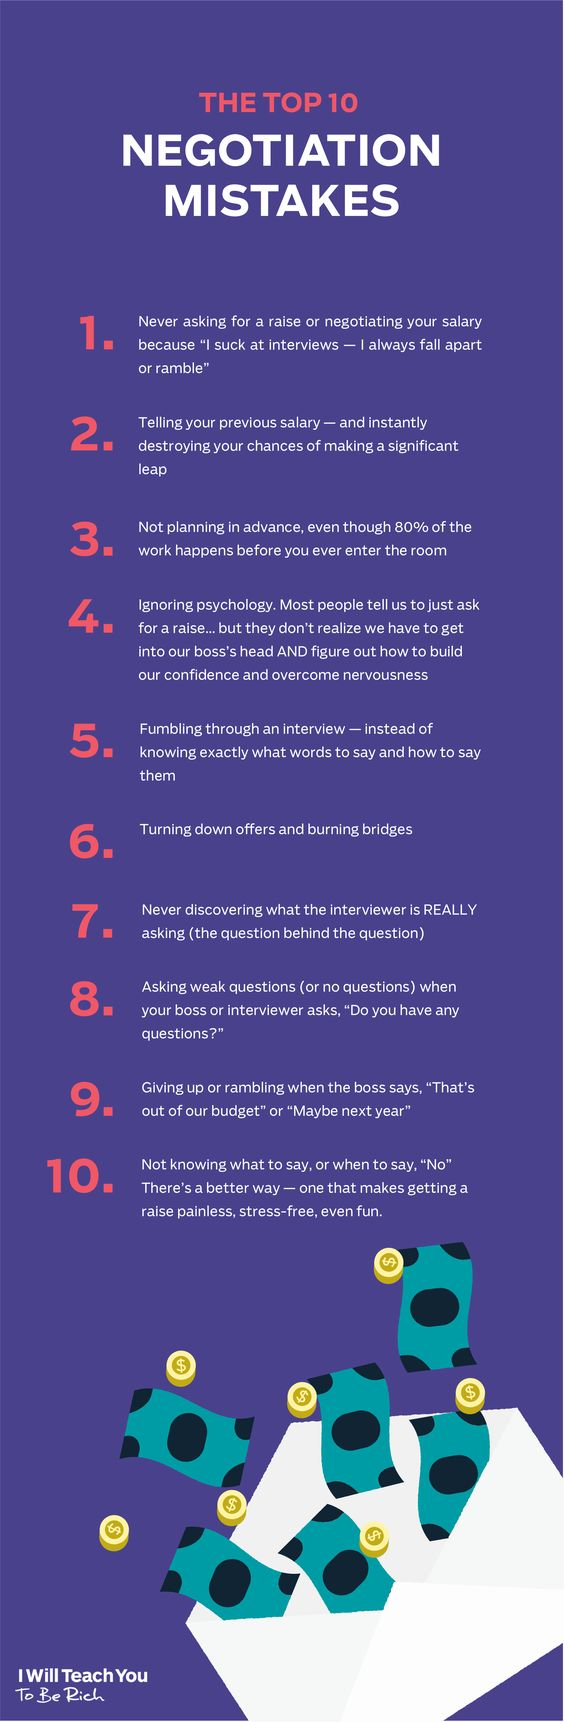 the top 10 negotiation miskates from the ultimate guide to asking the top 10 negotiation miskates from the ultimate guide to asking for a raise